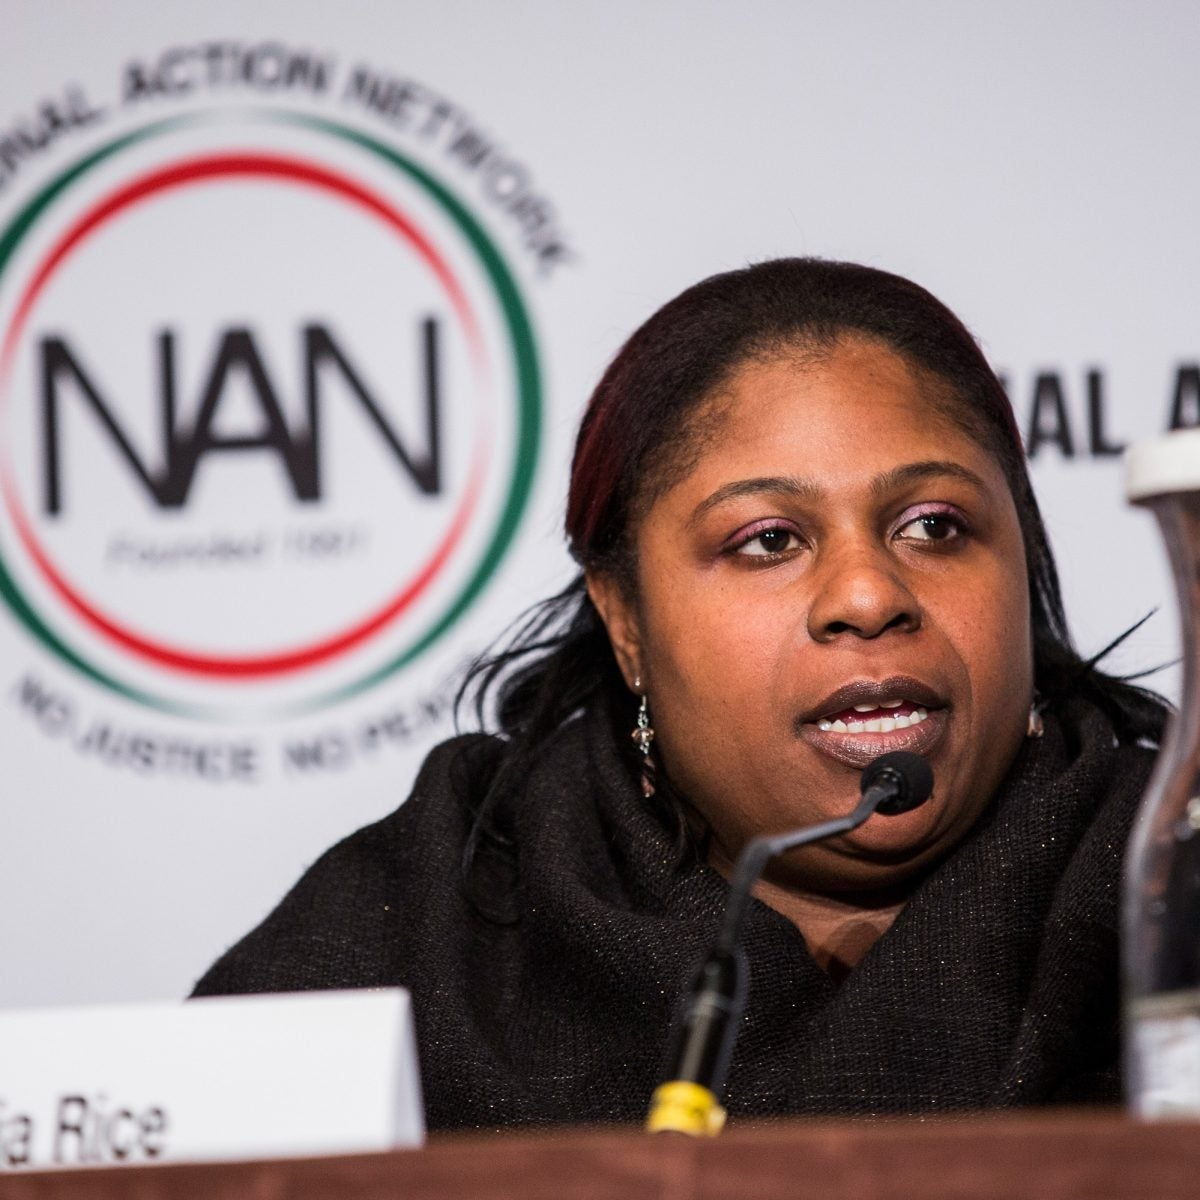 Mother of Tamir Rice Tells Activists to Stop Profiting off Her Son's Death